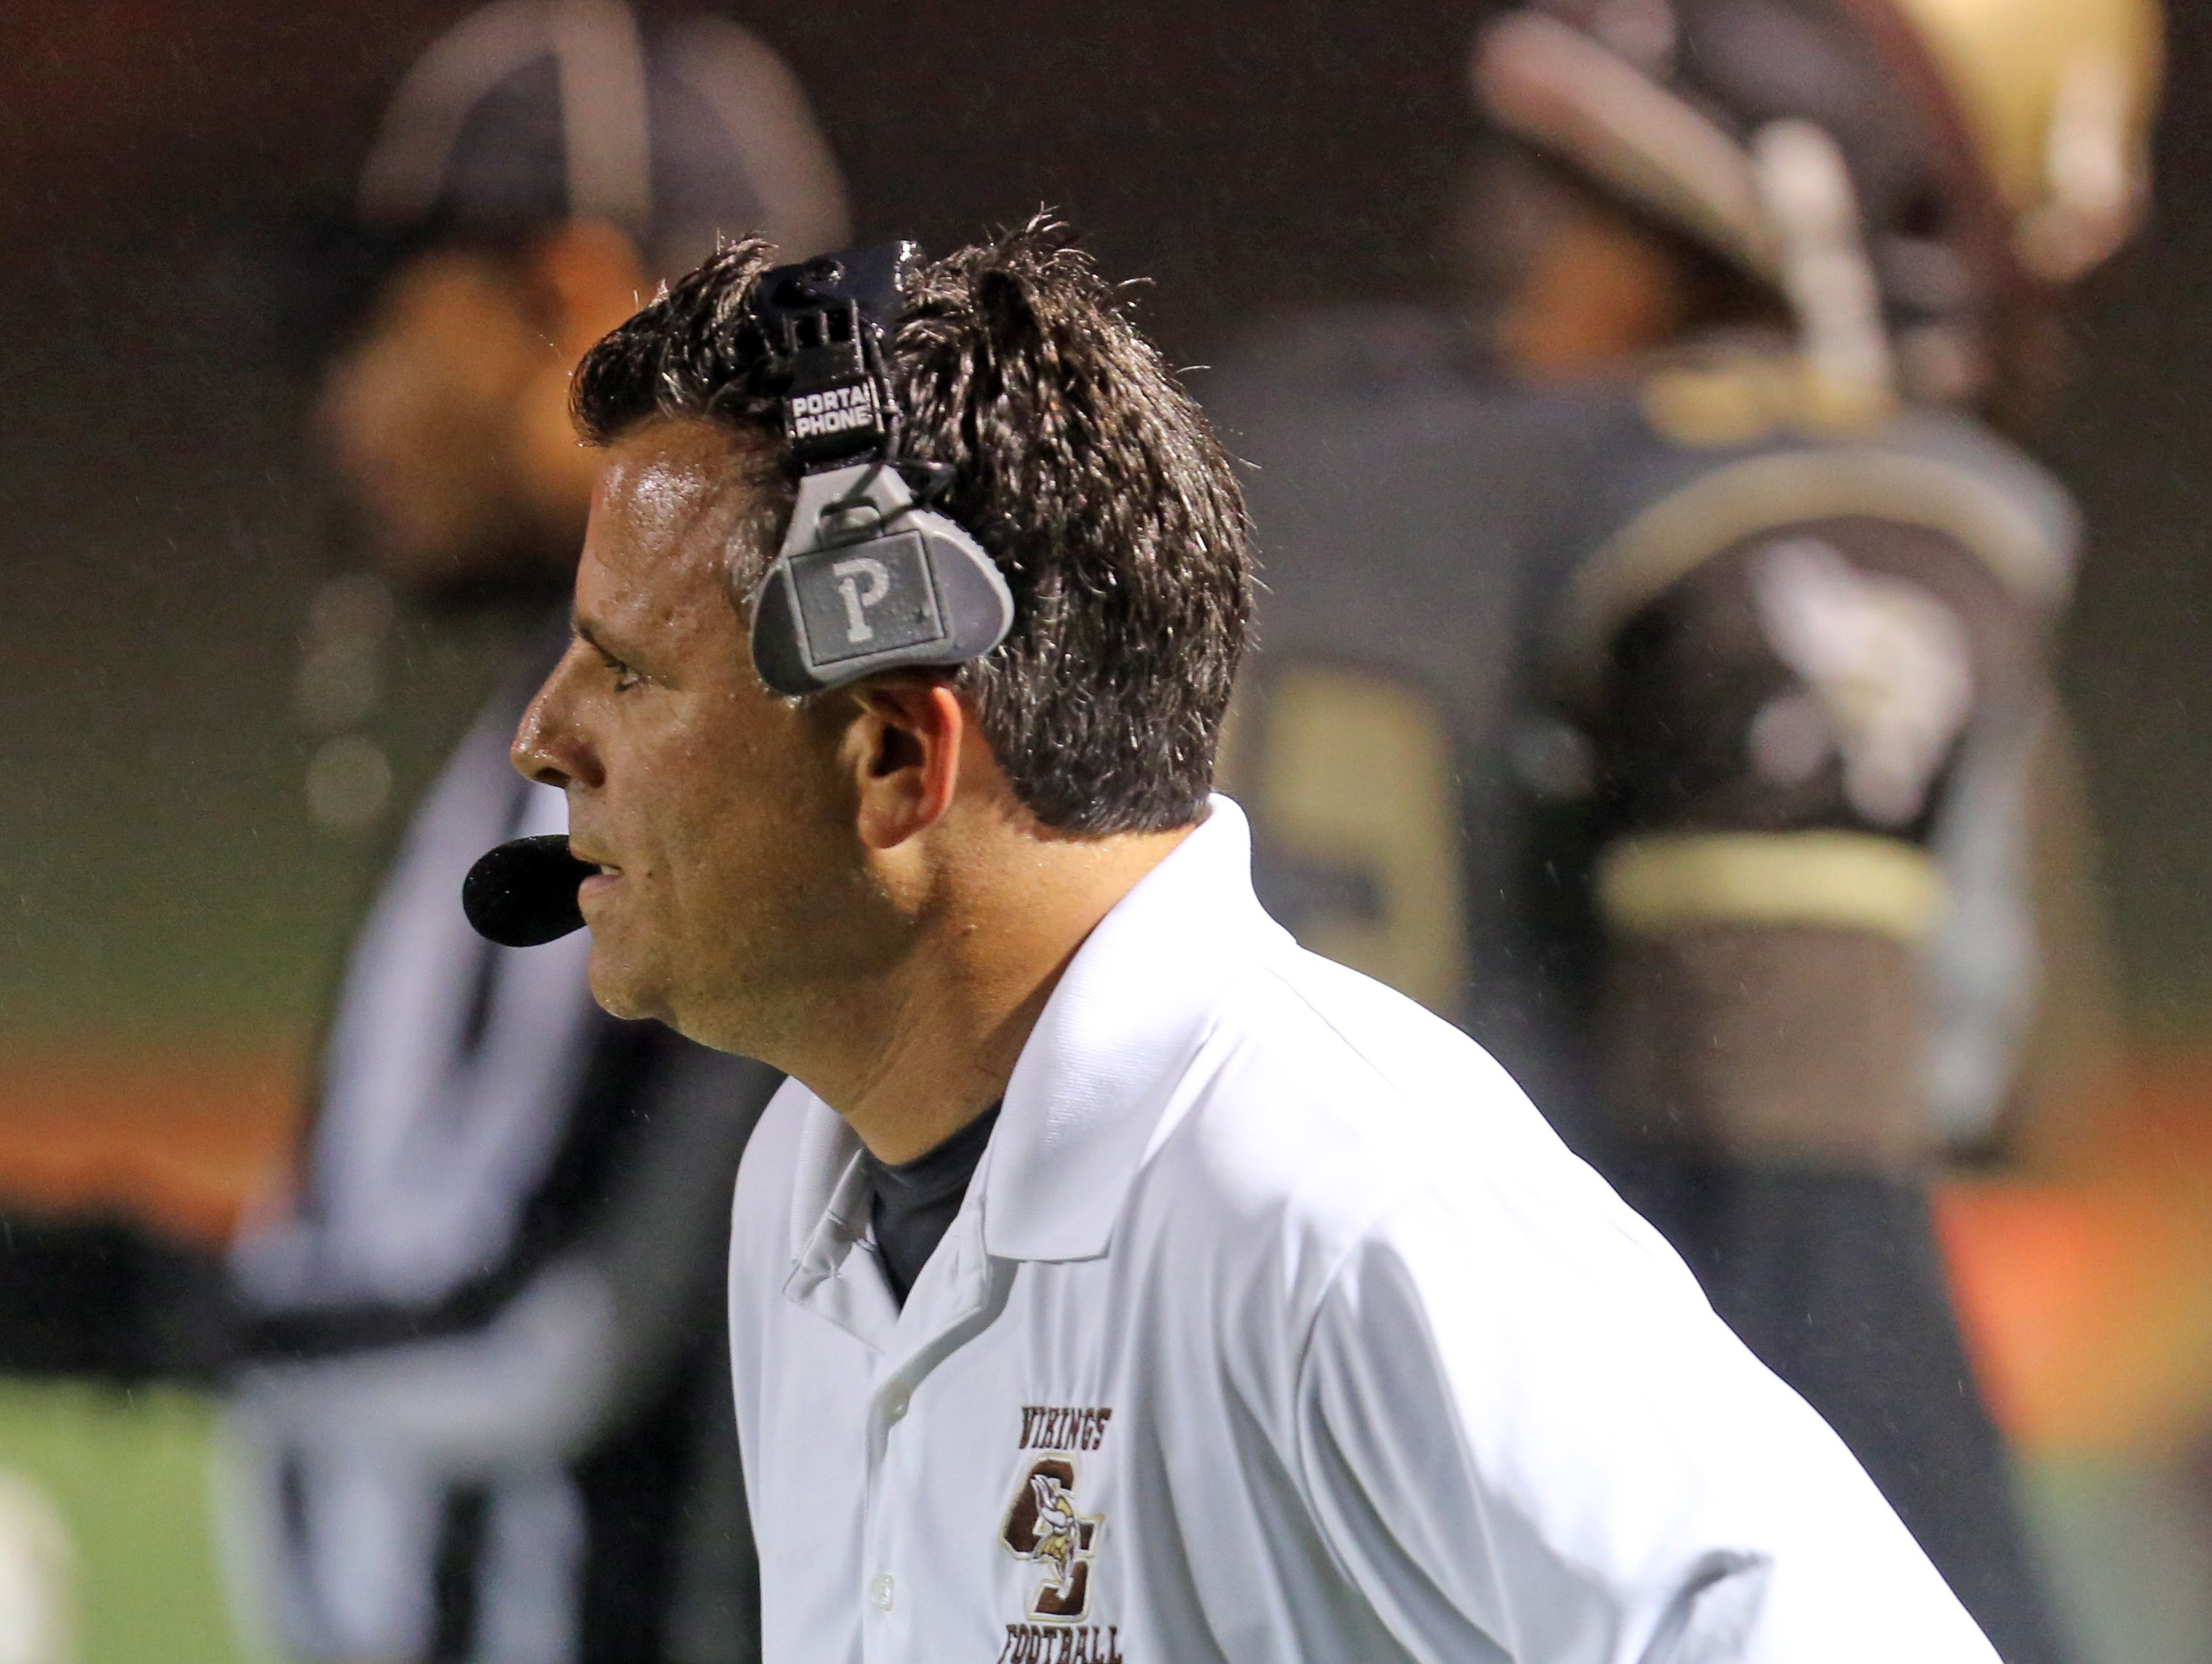 Clarkstown South coach Mike Scarpelli is pictured during his team's 39-18 loss to New Rochelle at Clarkstown South High School in West Nyack on Sept. 30, 2016.